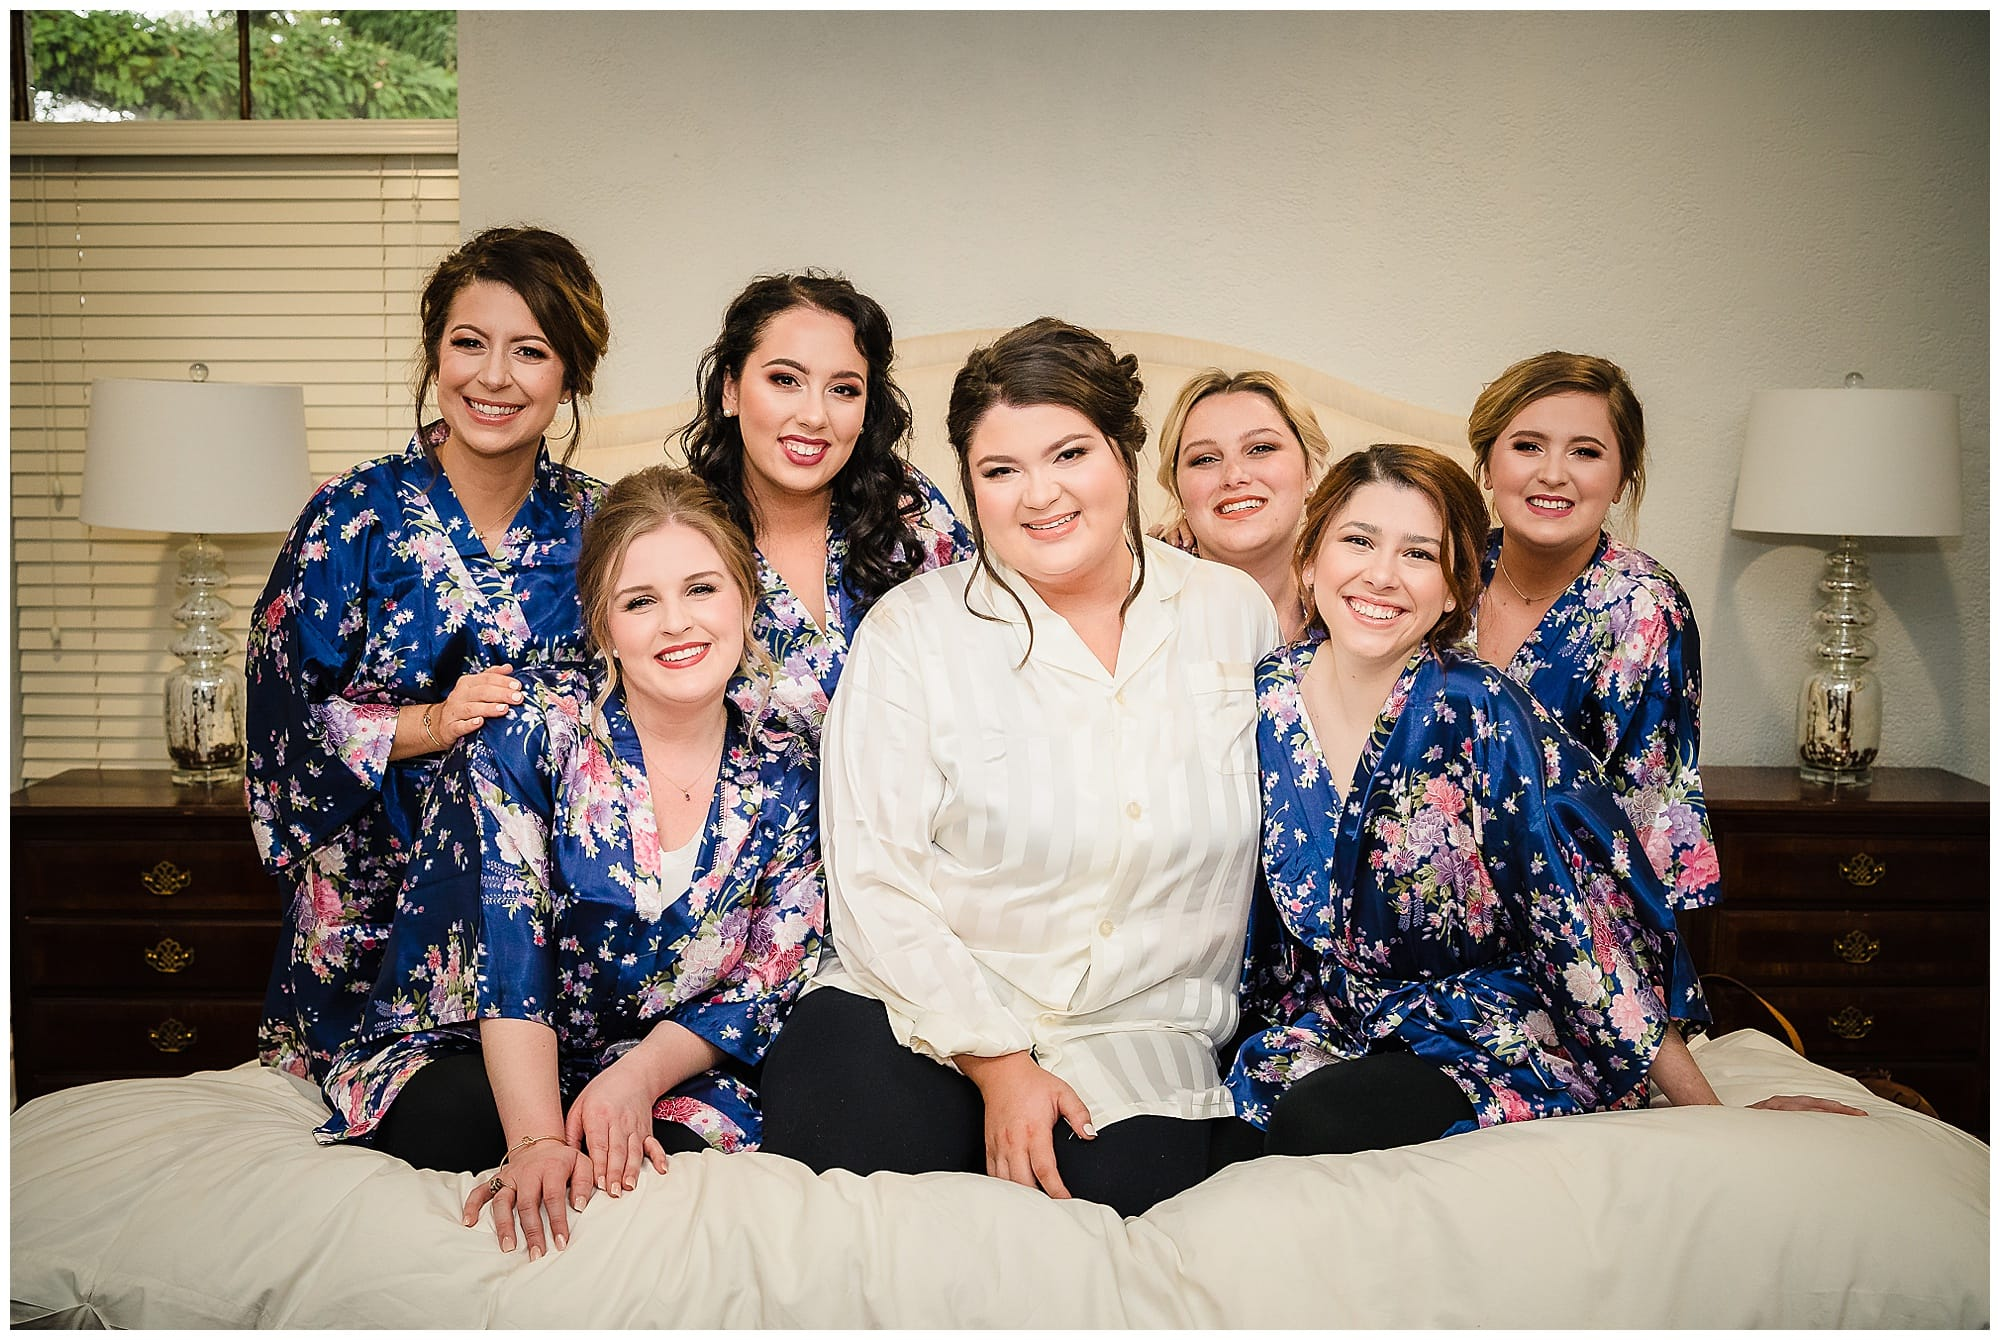 bridal party posing on bed with matching robes